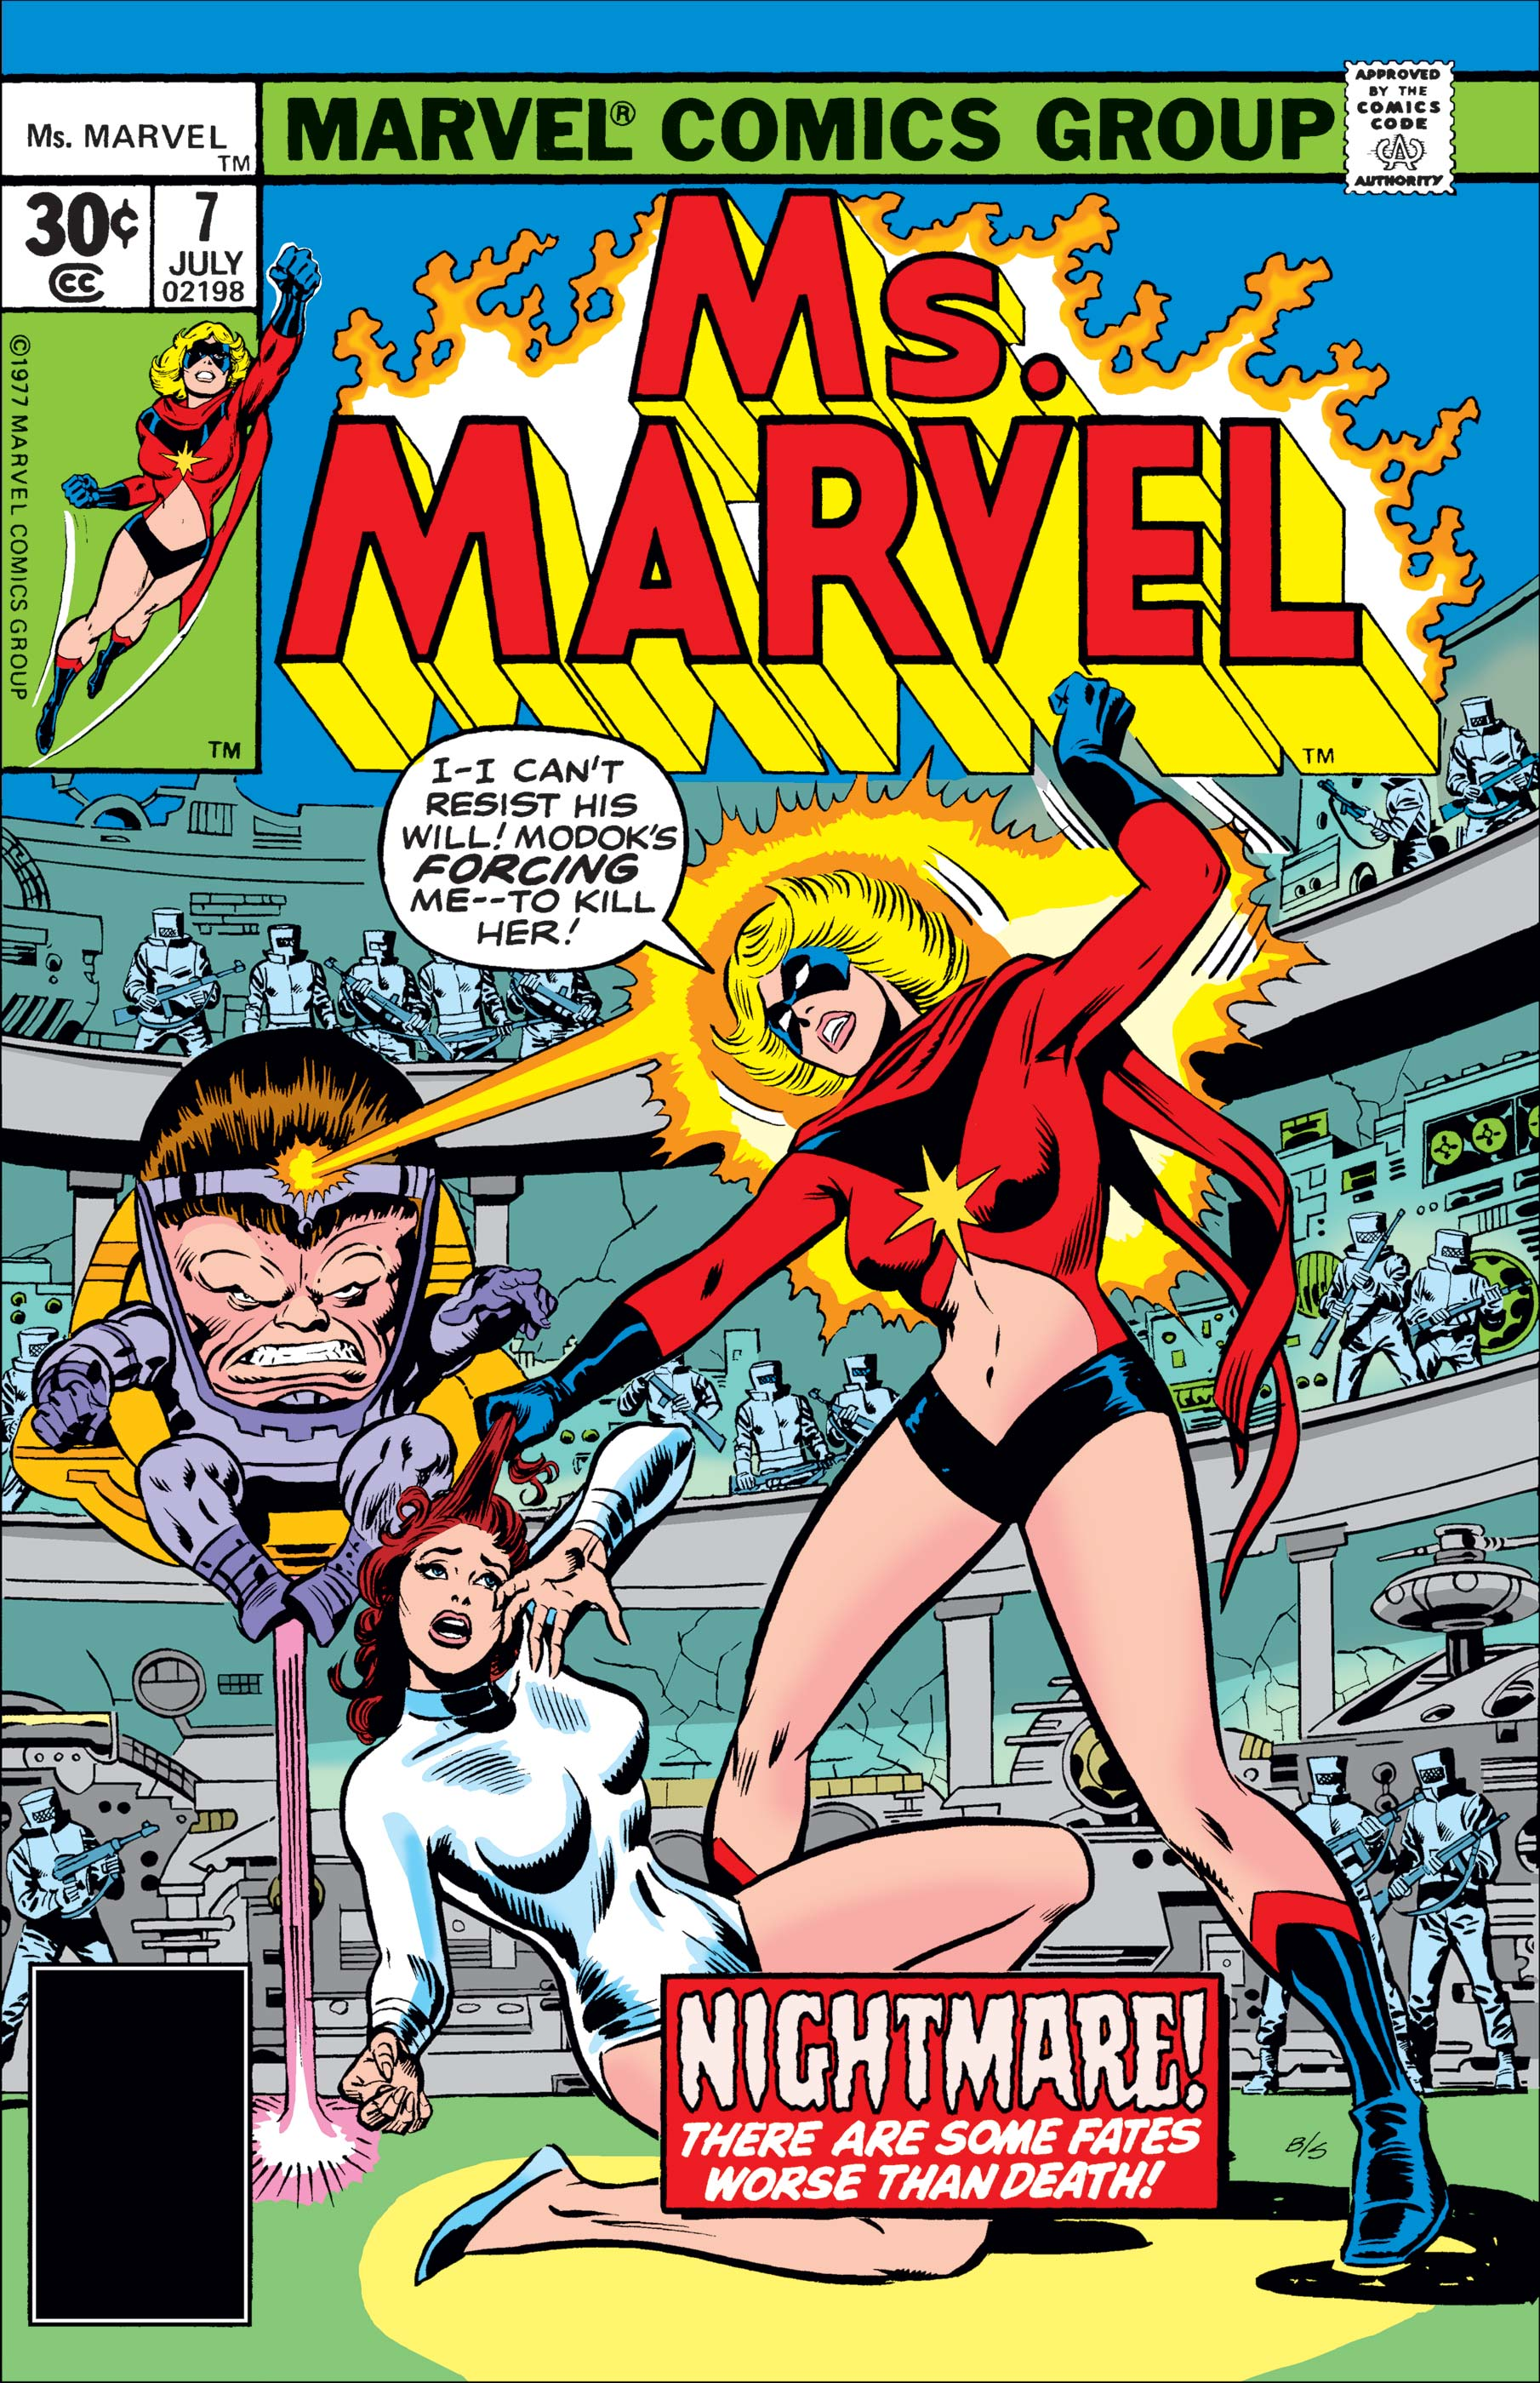 Ms. Marvel (1977) #7